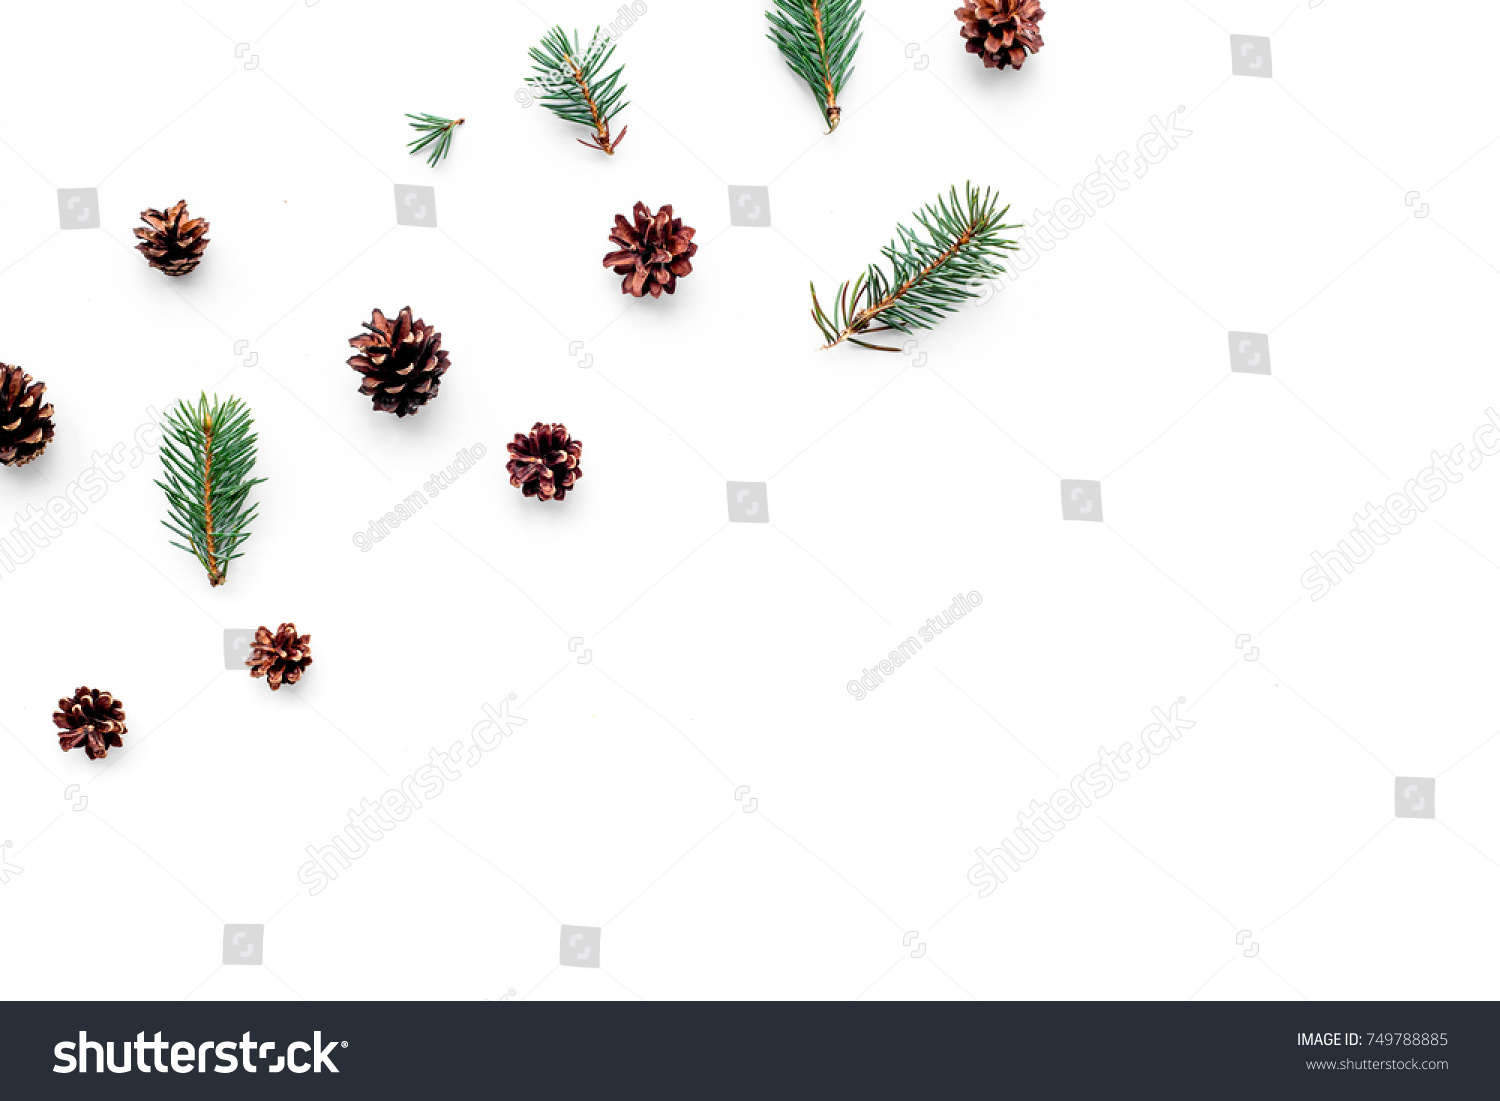 New year symbols pattern spruce branches stock photo 749788885 new year symbols pattern spruce branches and cones on white background top view copyspace biocorpaavc Image collections